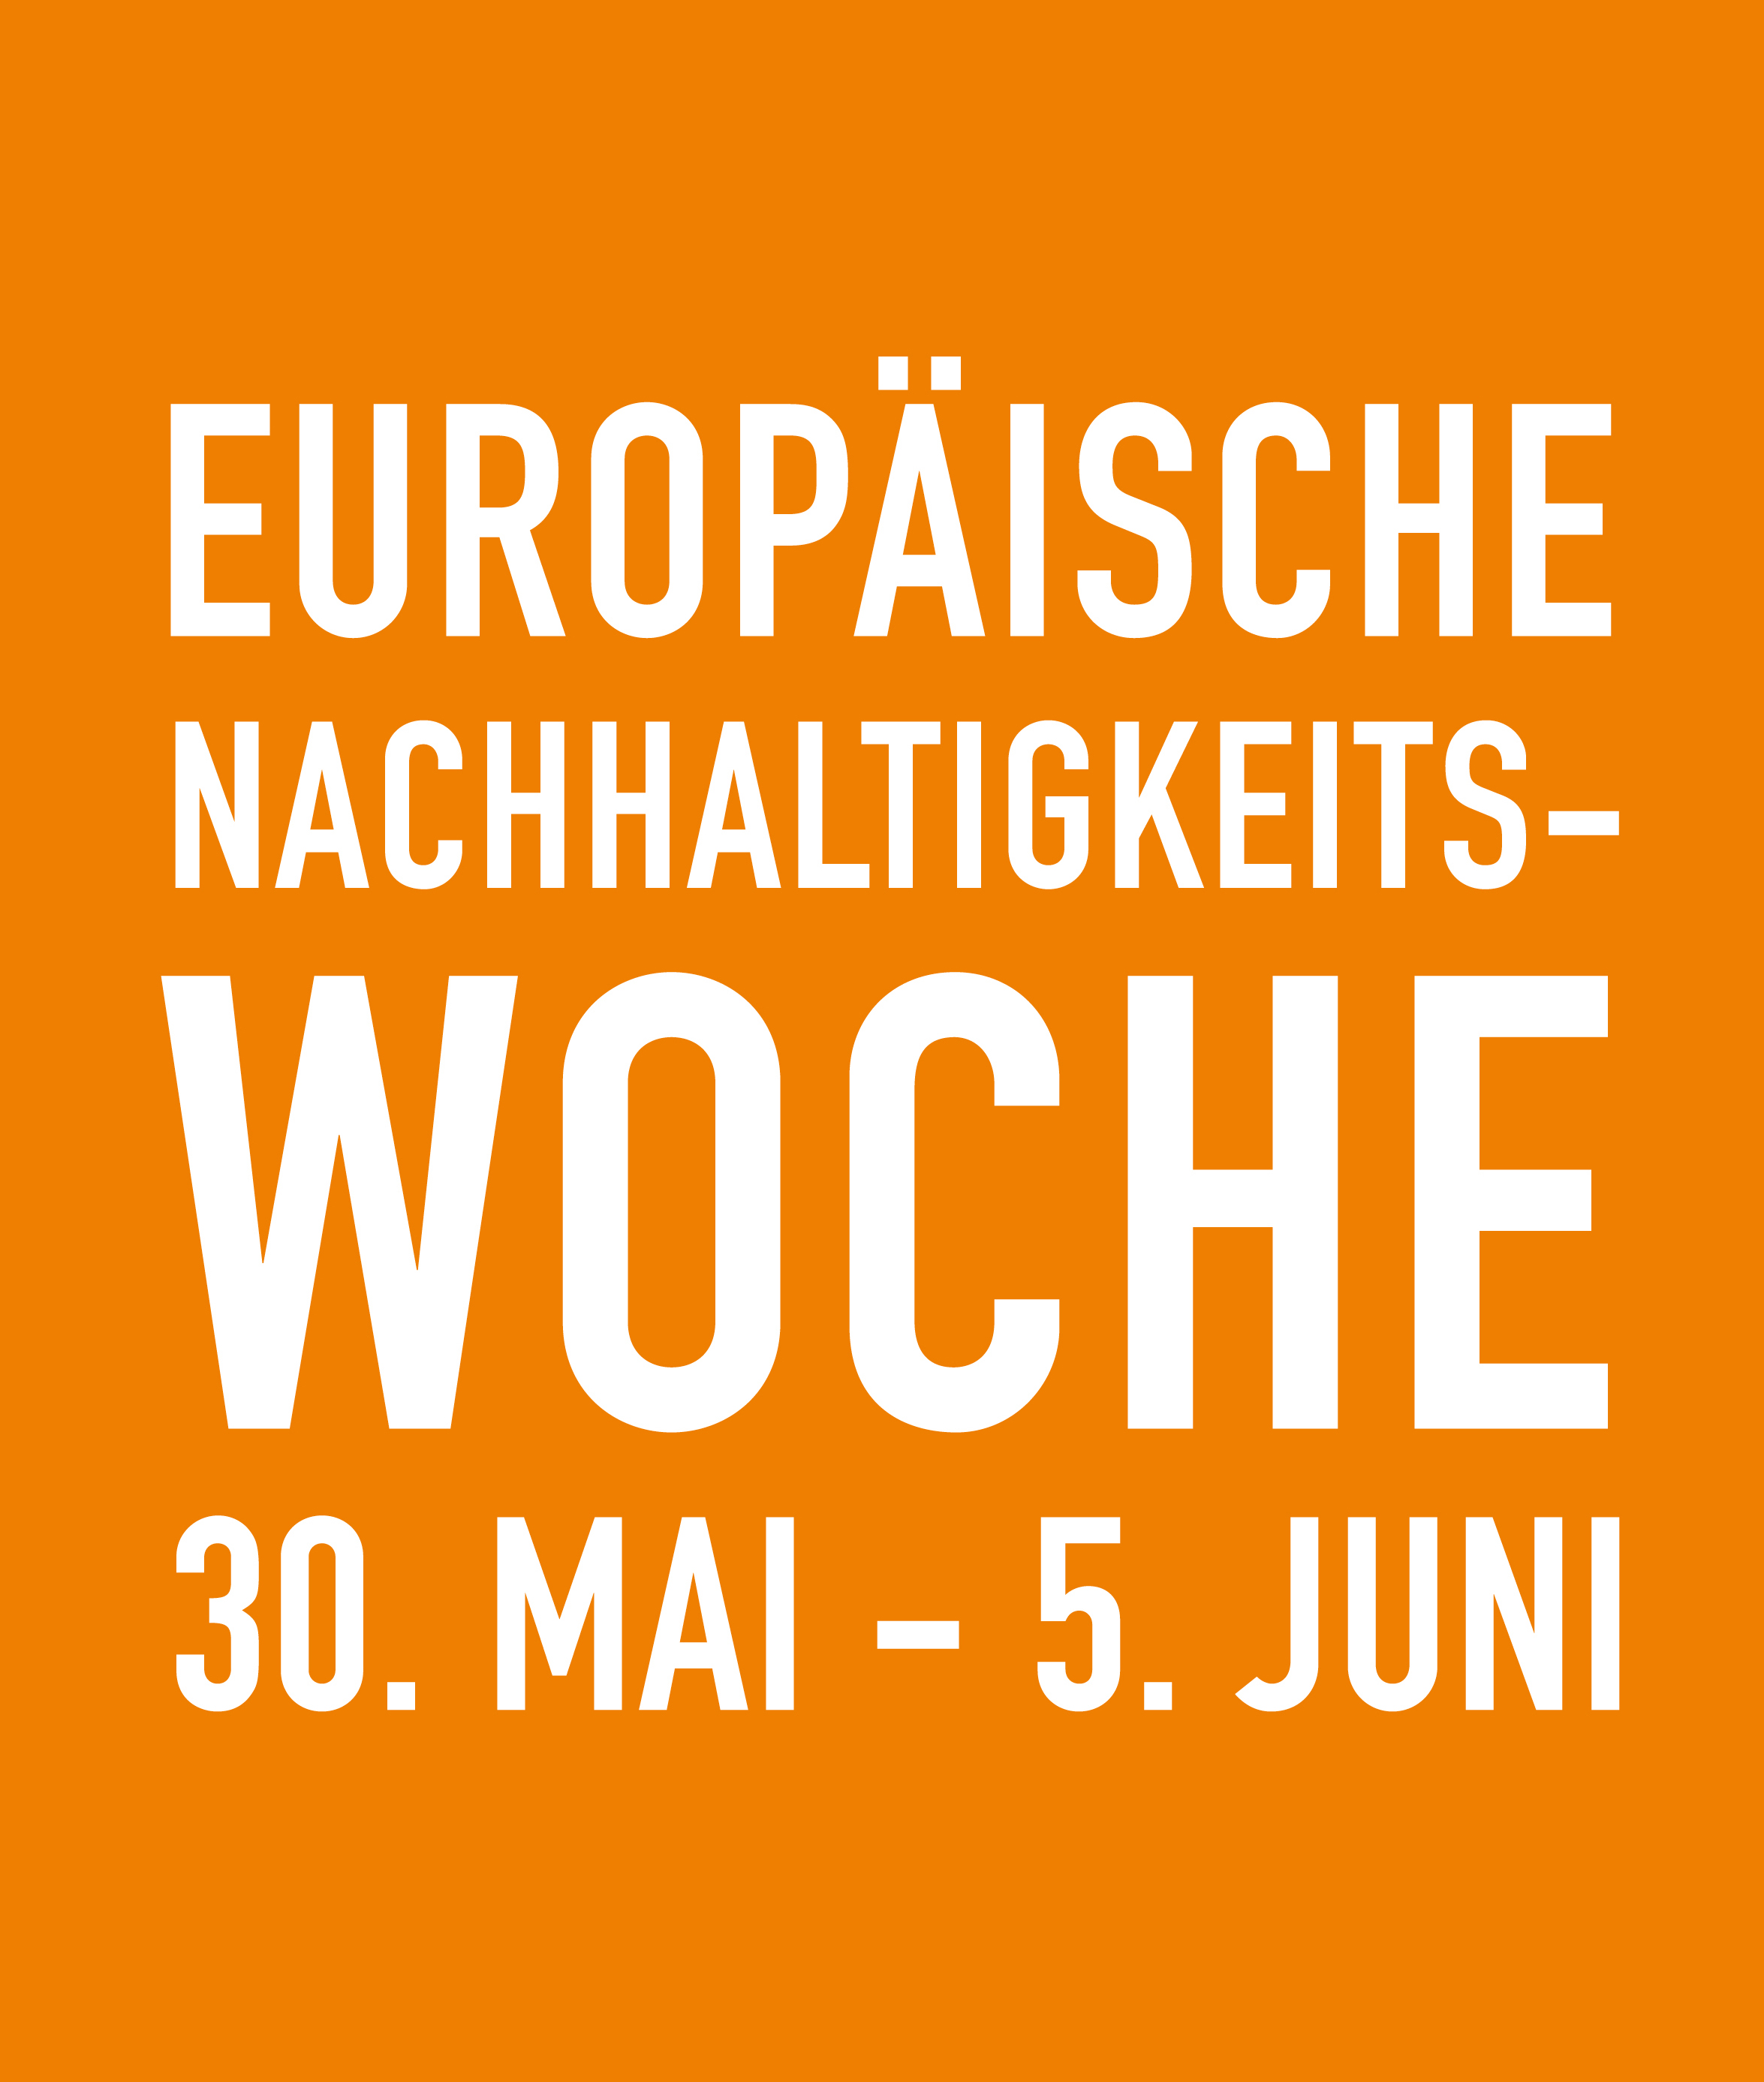 European Sustainable Development Week - ESDW (30th May - 5th June 2015)